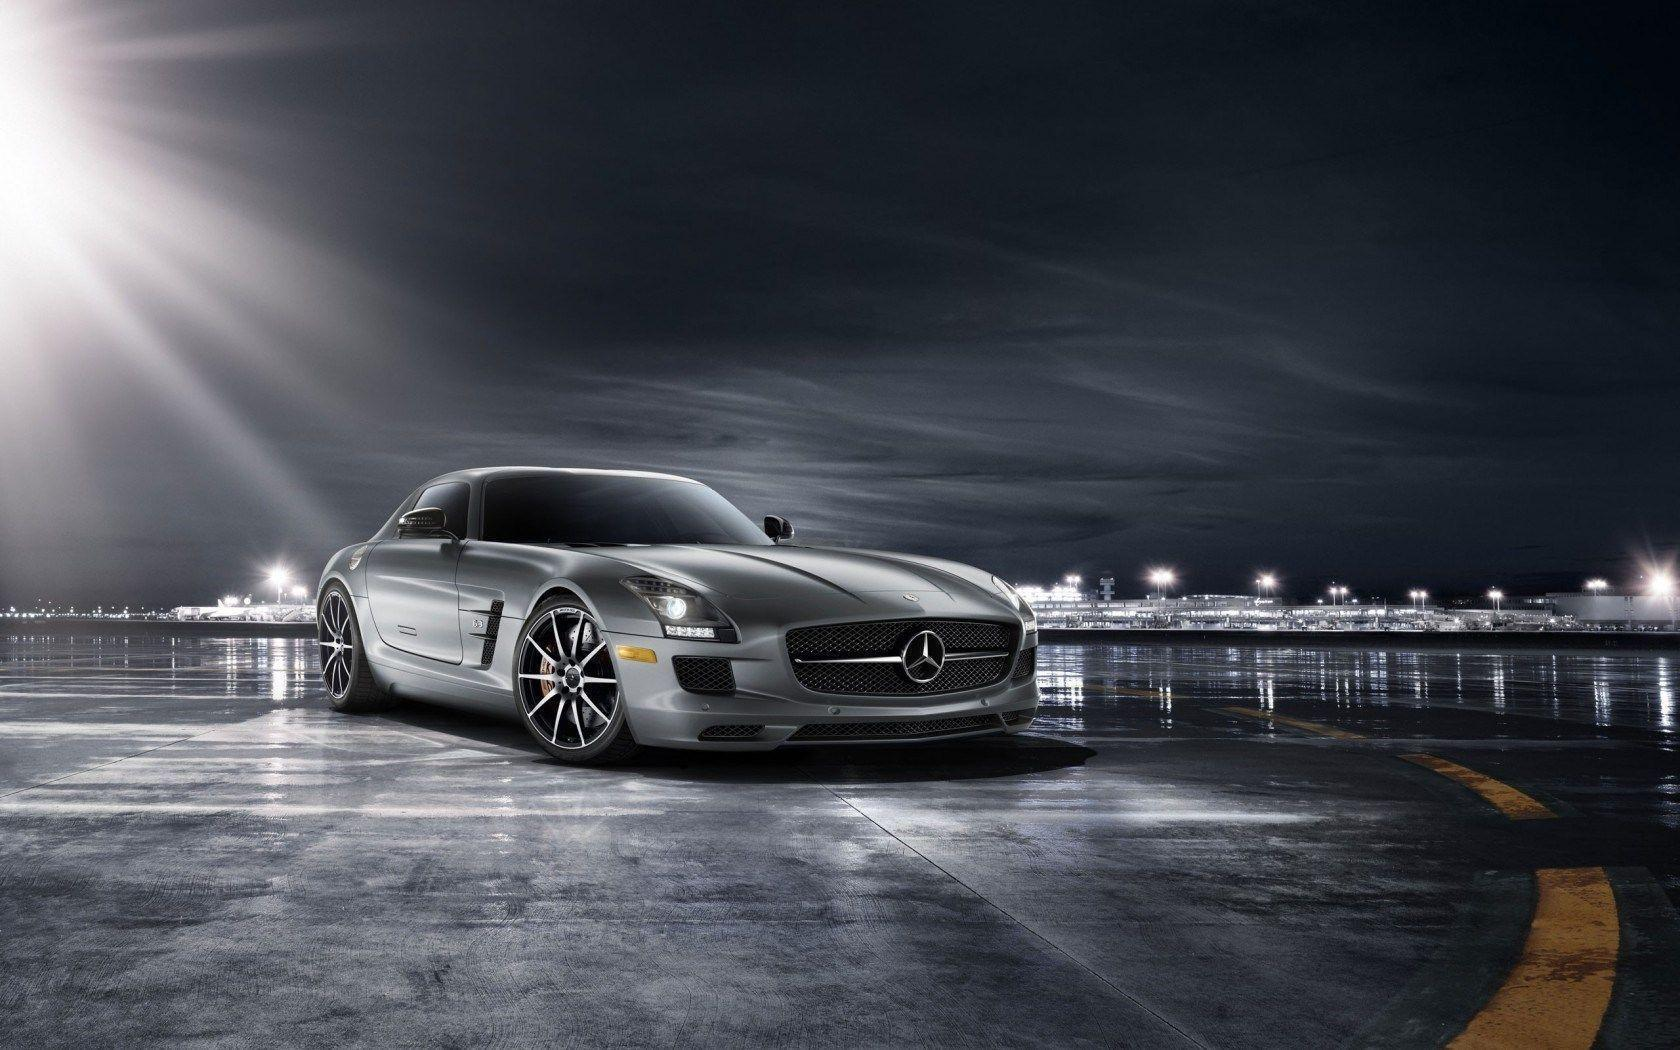 Mercedes Benz AMG Wallpapers 1680x1050